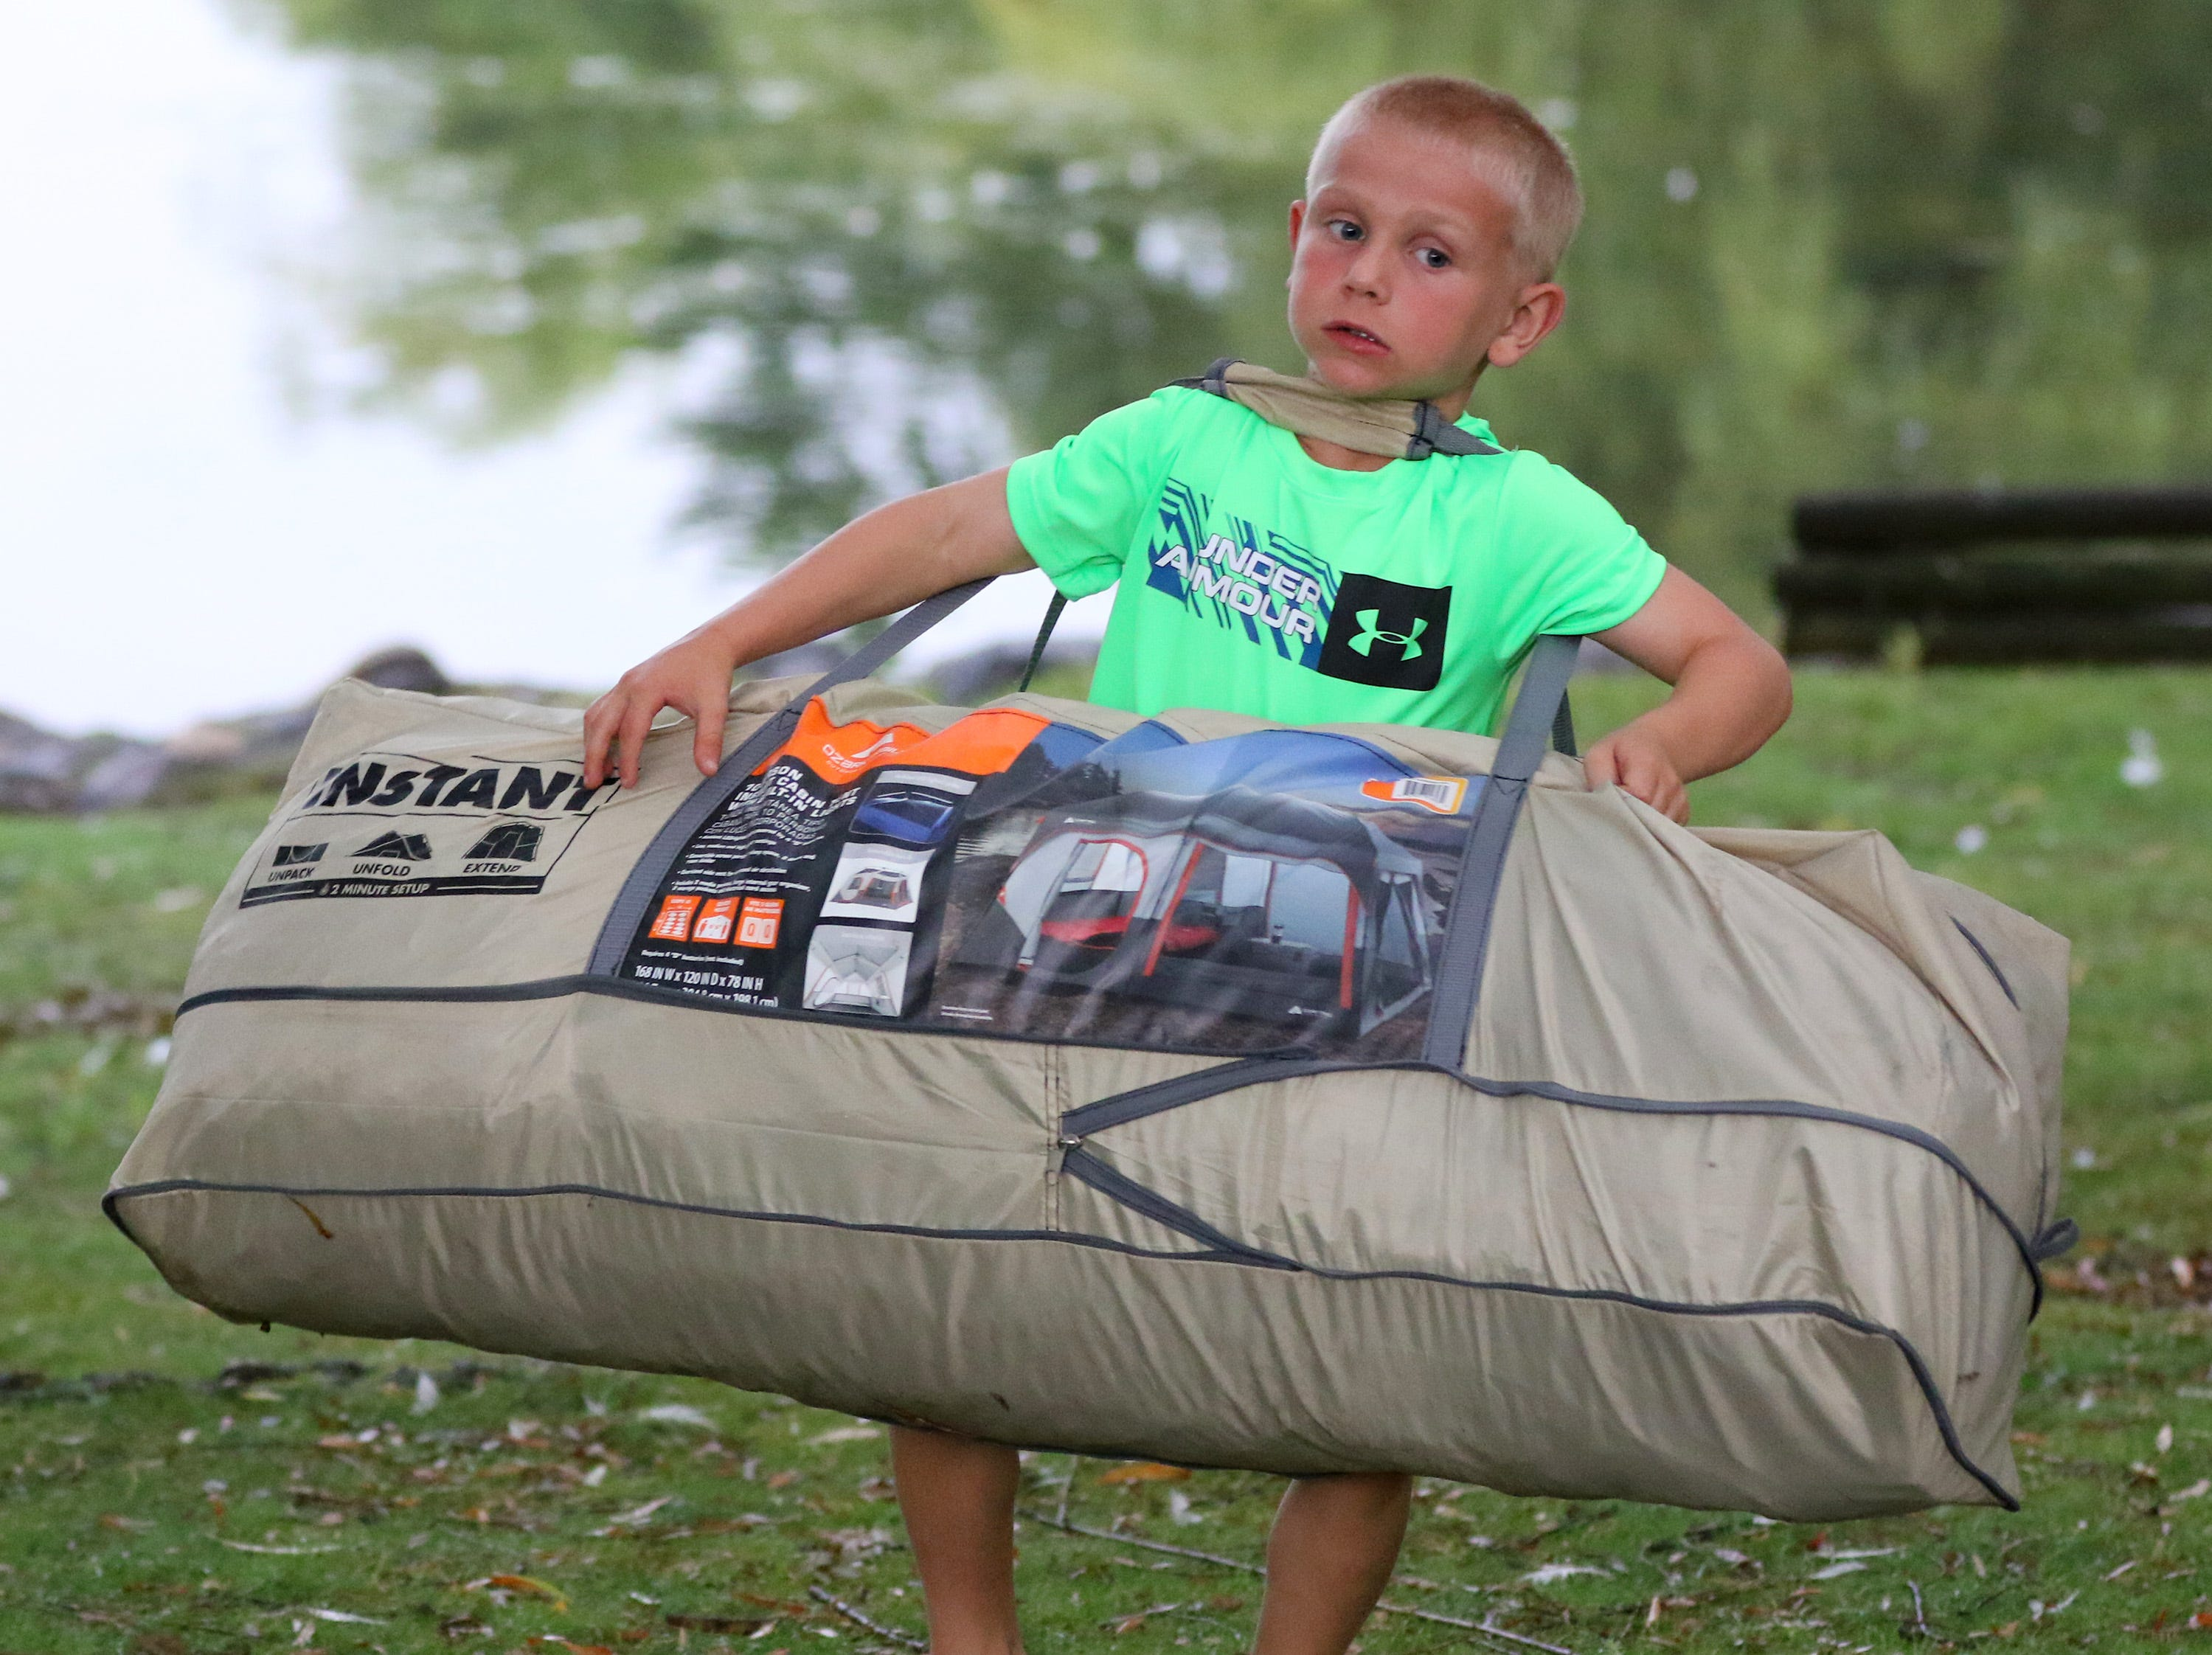 Gavin Lovejoy of Delafield tries to muscle the family's tent into place next to Lake Evinrude on Aug. 9 during the Milwaukee County Zoo's Snooze at the Zoo.